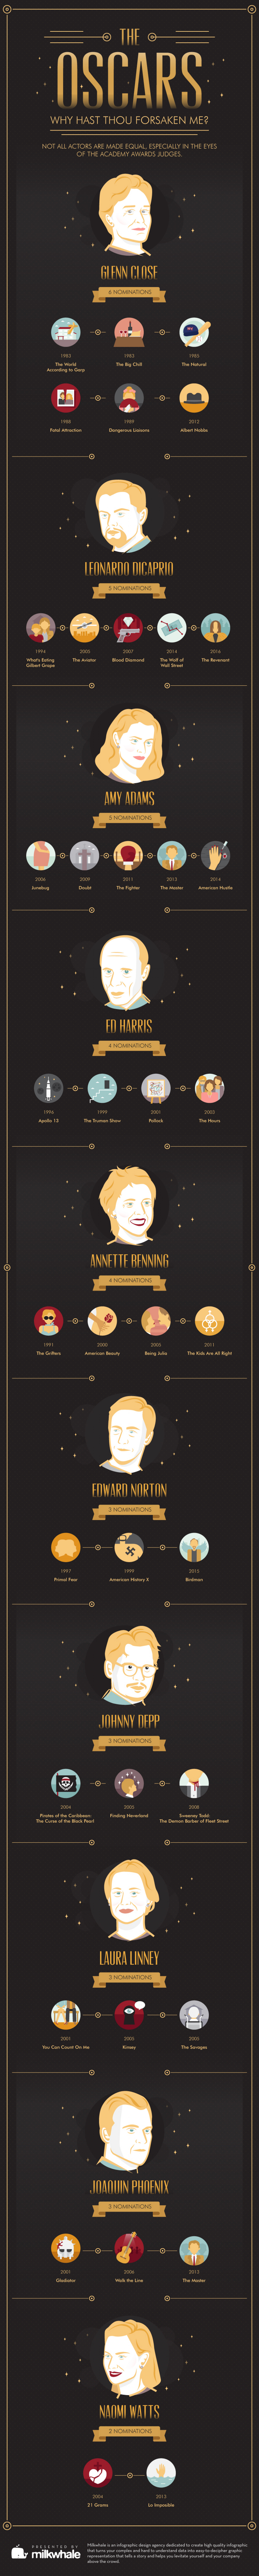 The Oscars - Why Hast Thou Forsaken Me? Infographic